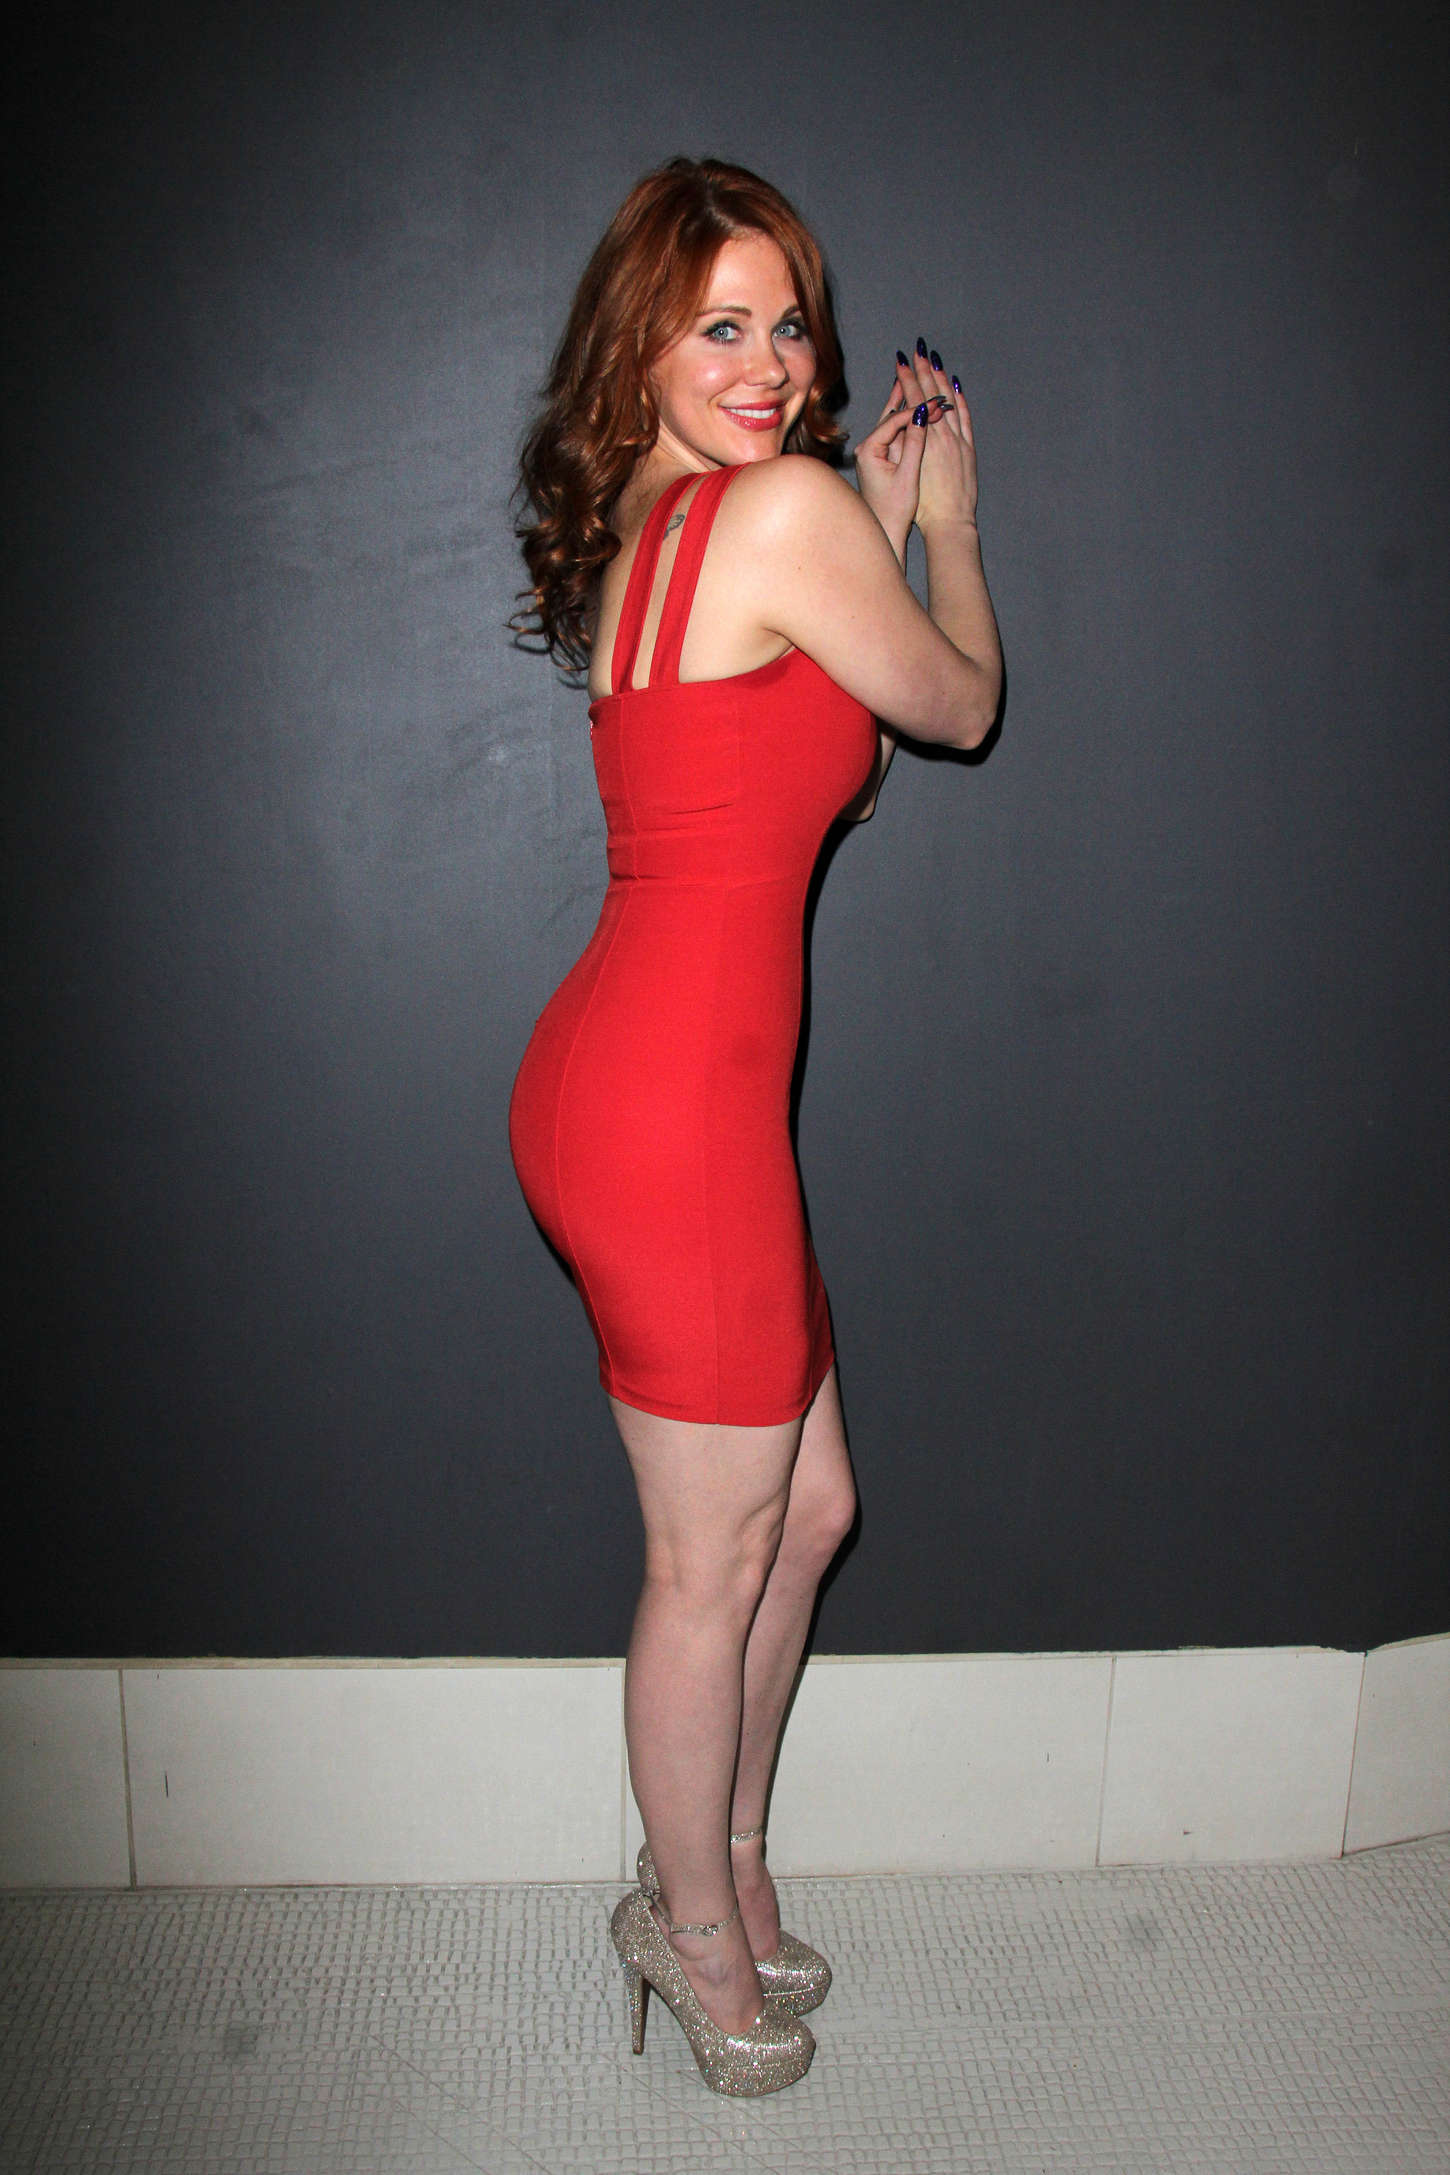 Tight Red Dress | Dress images